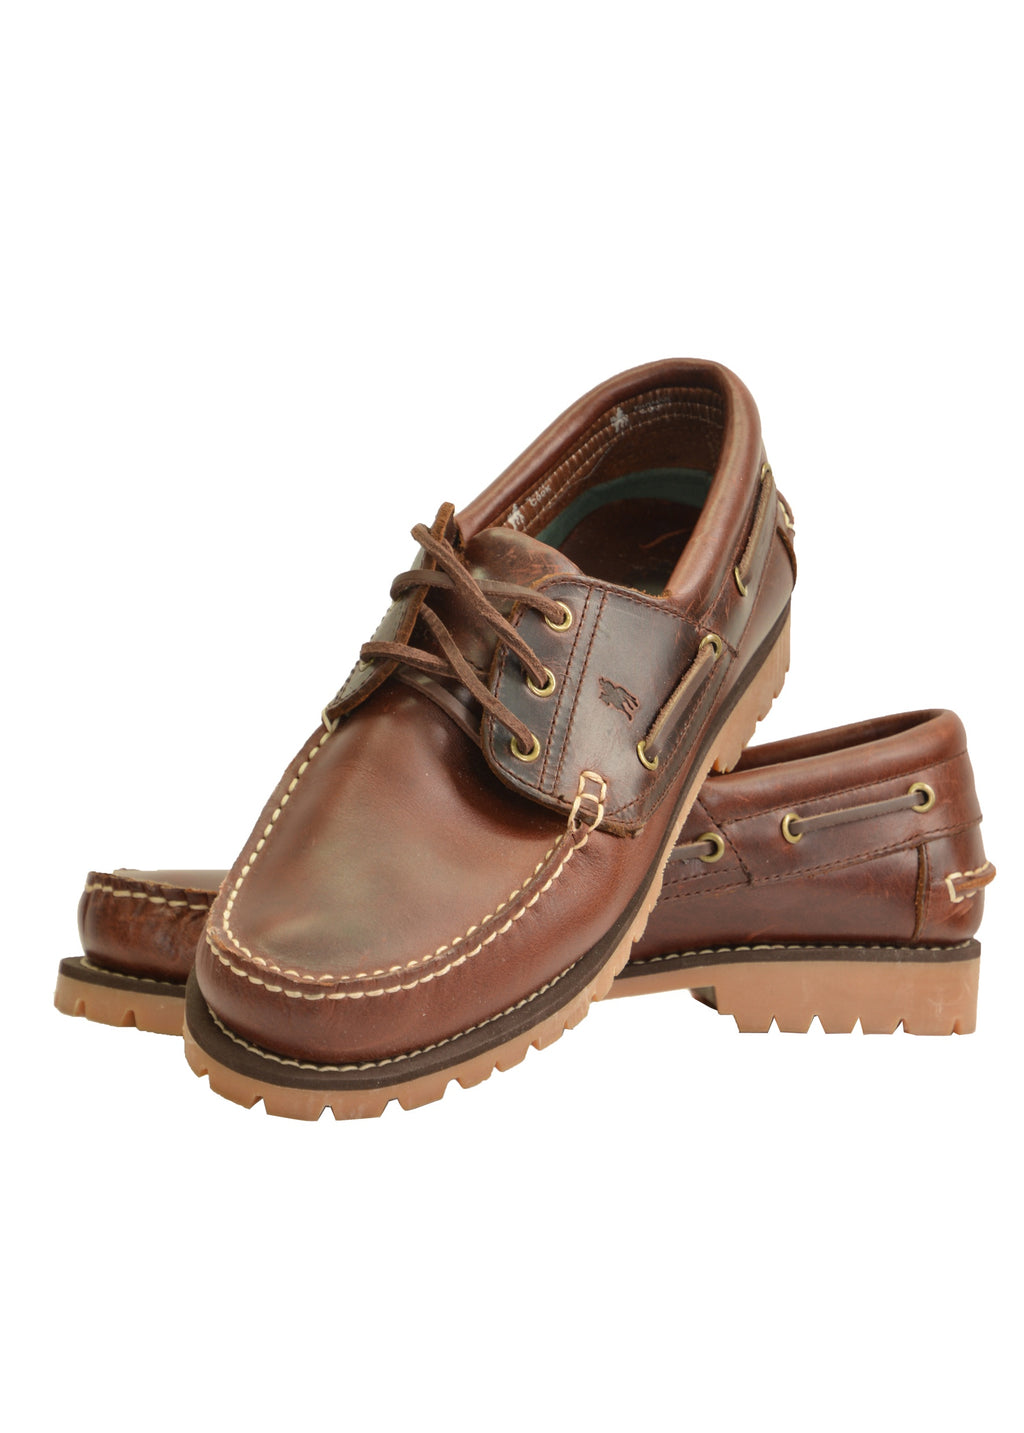 Mens Cruiser Boat Shoe - Cleated Sole (Dark Brown)